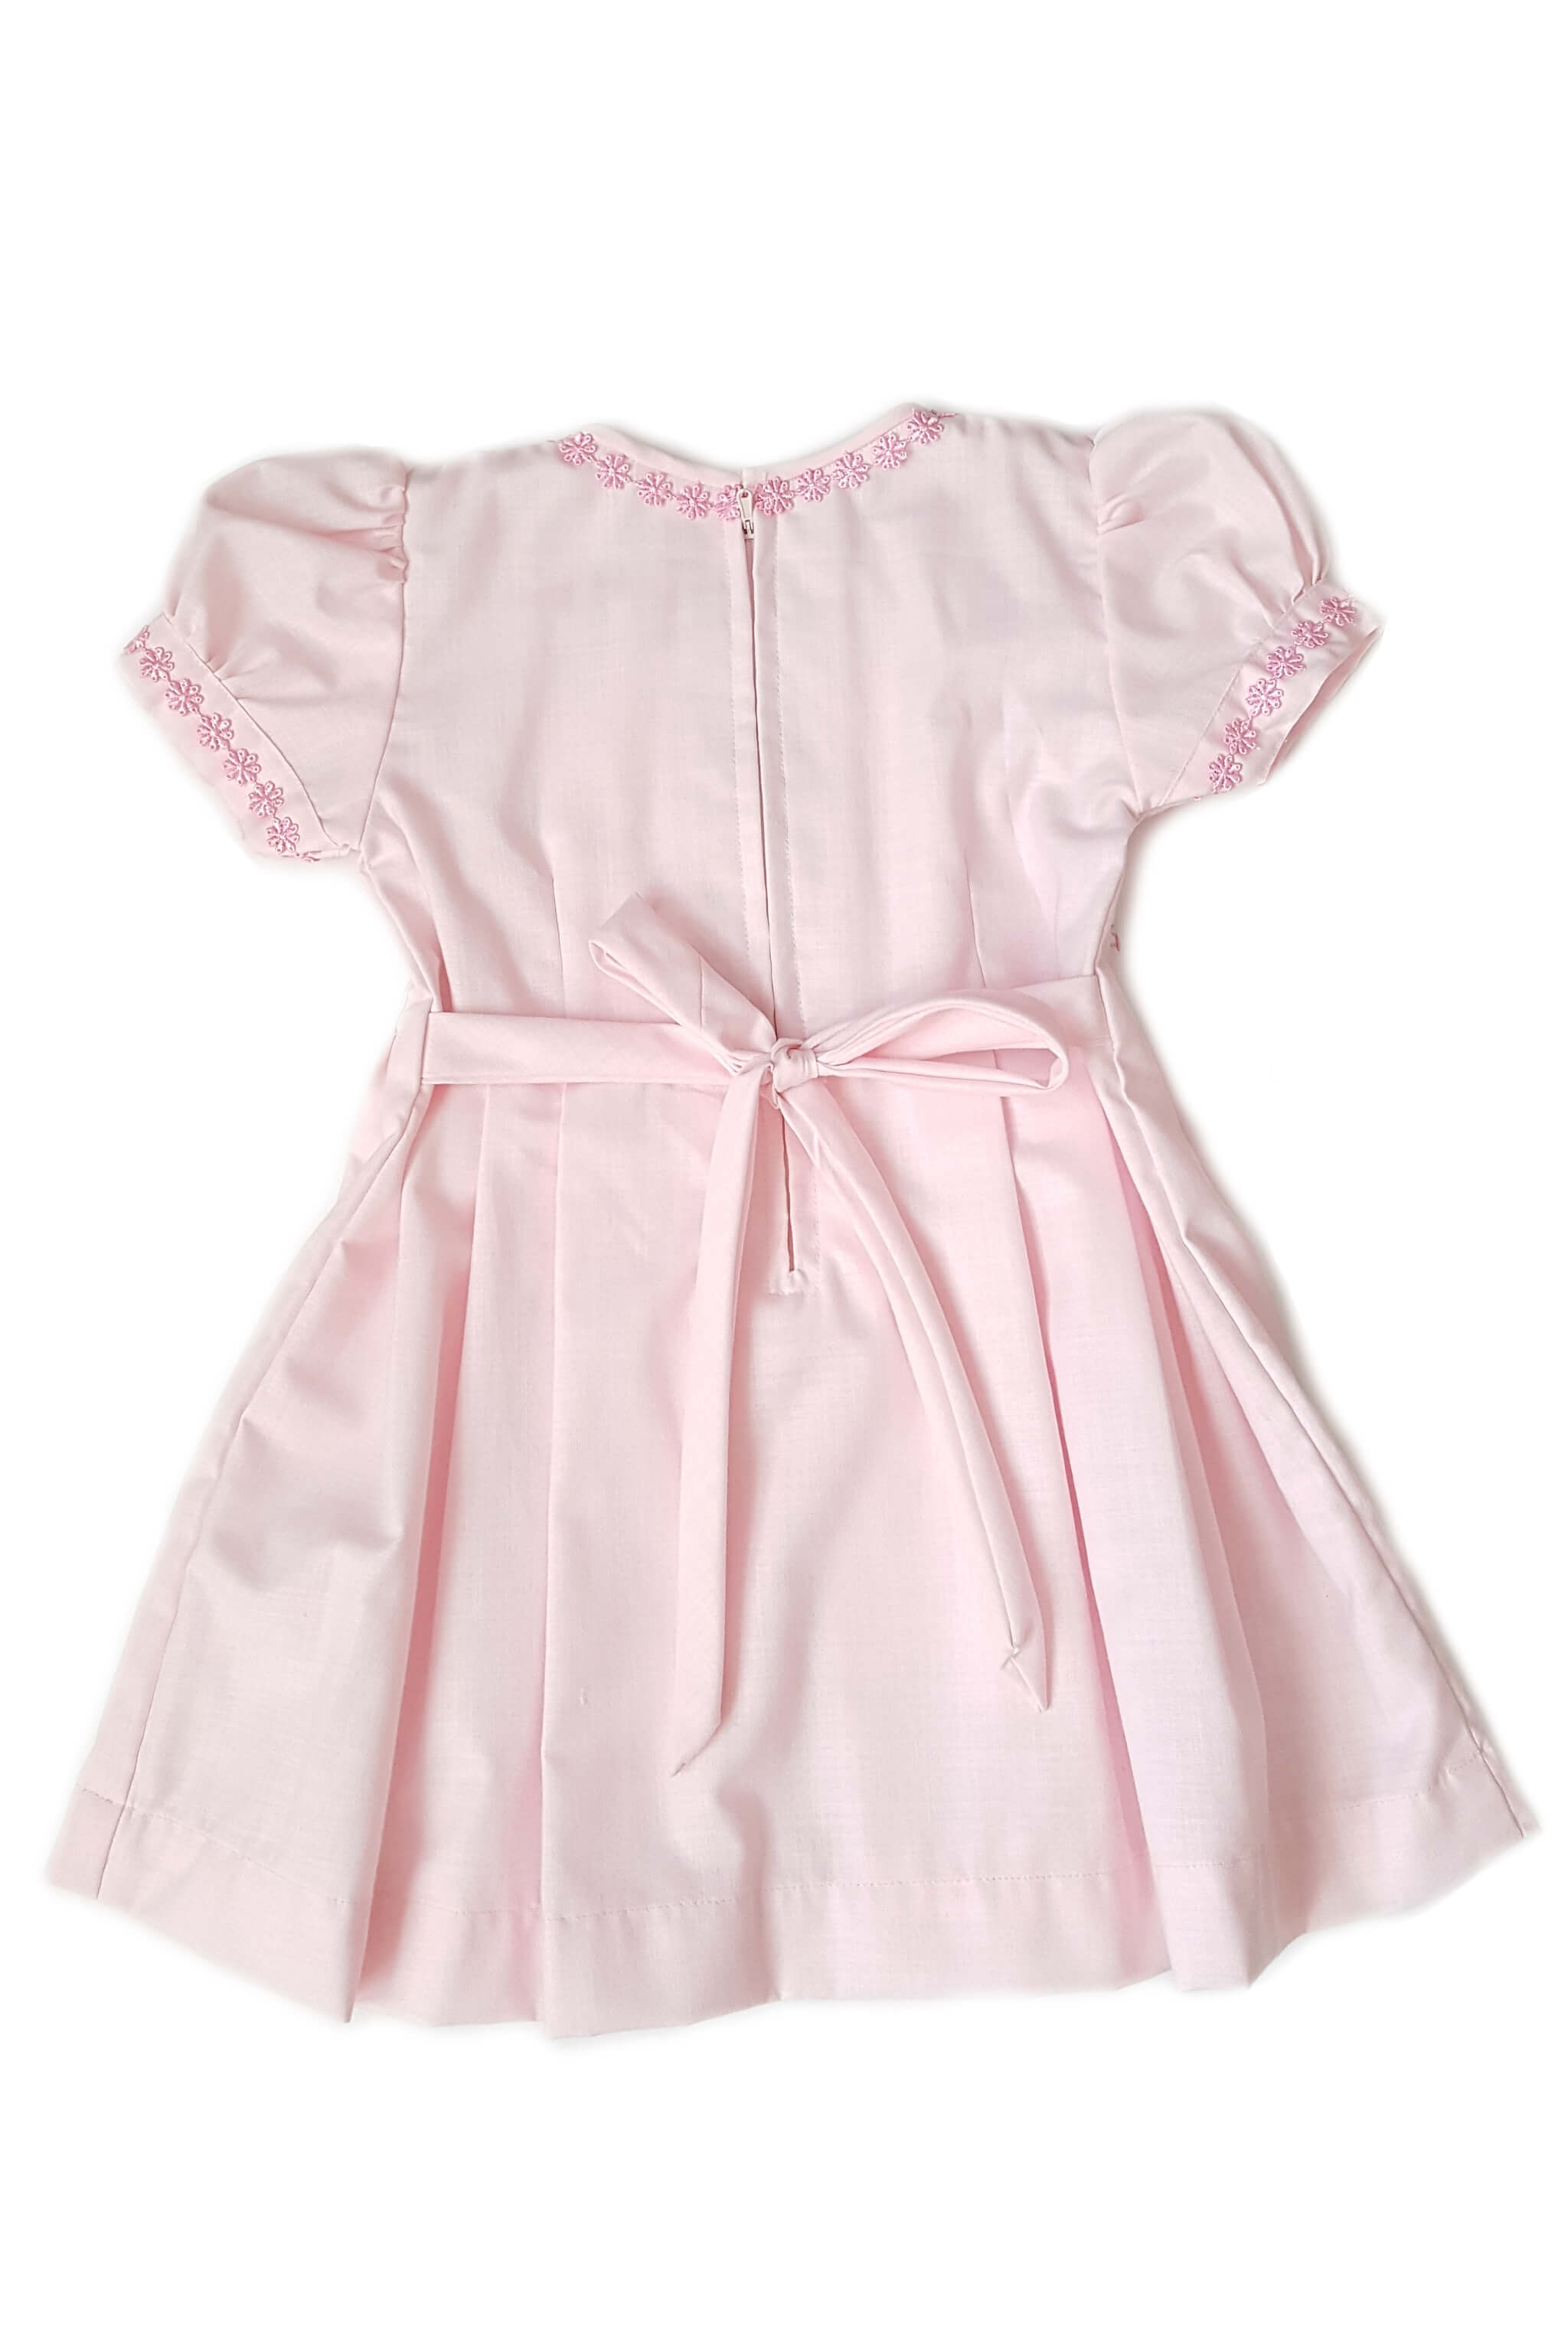 Back of pastel pink pleated dress with hand-embroidered rosettes along the bodice box pleats cascading down the dress with zippered back and sash to tie at waist for little girls as a bridesmaid's dress